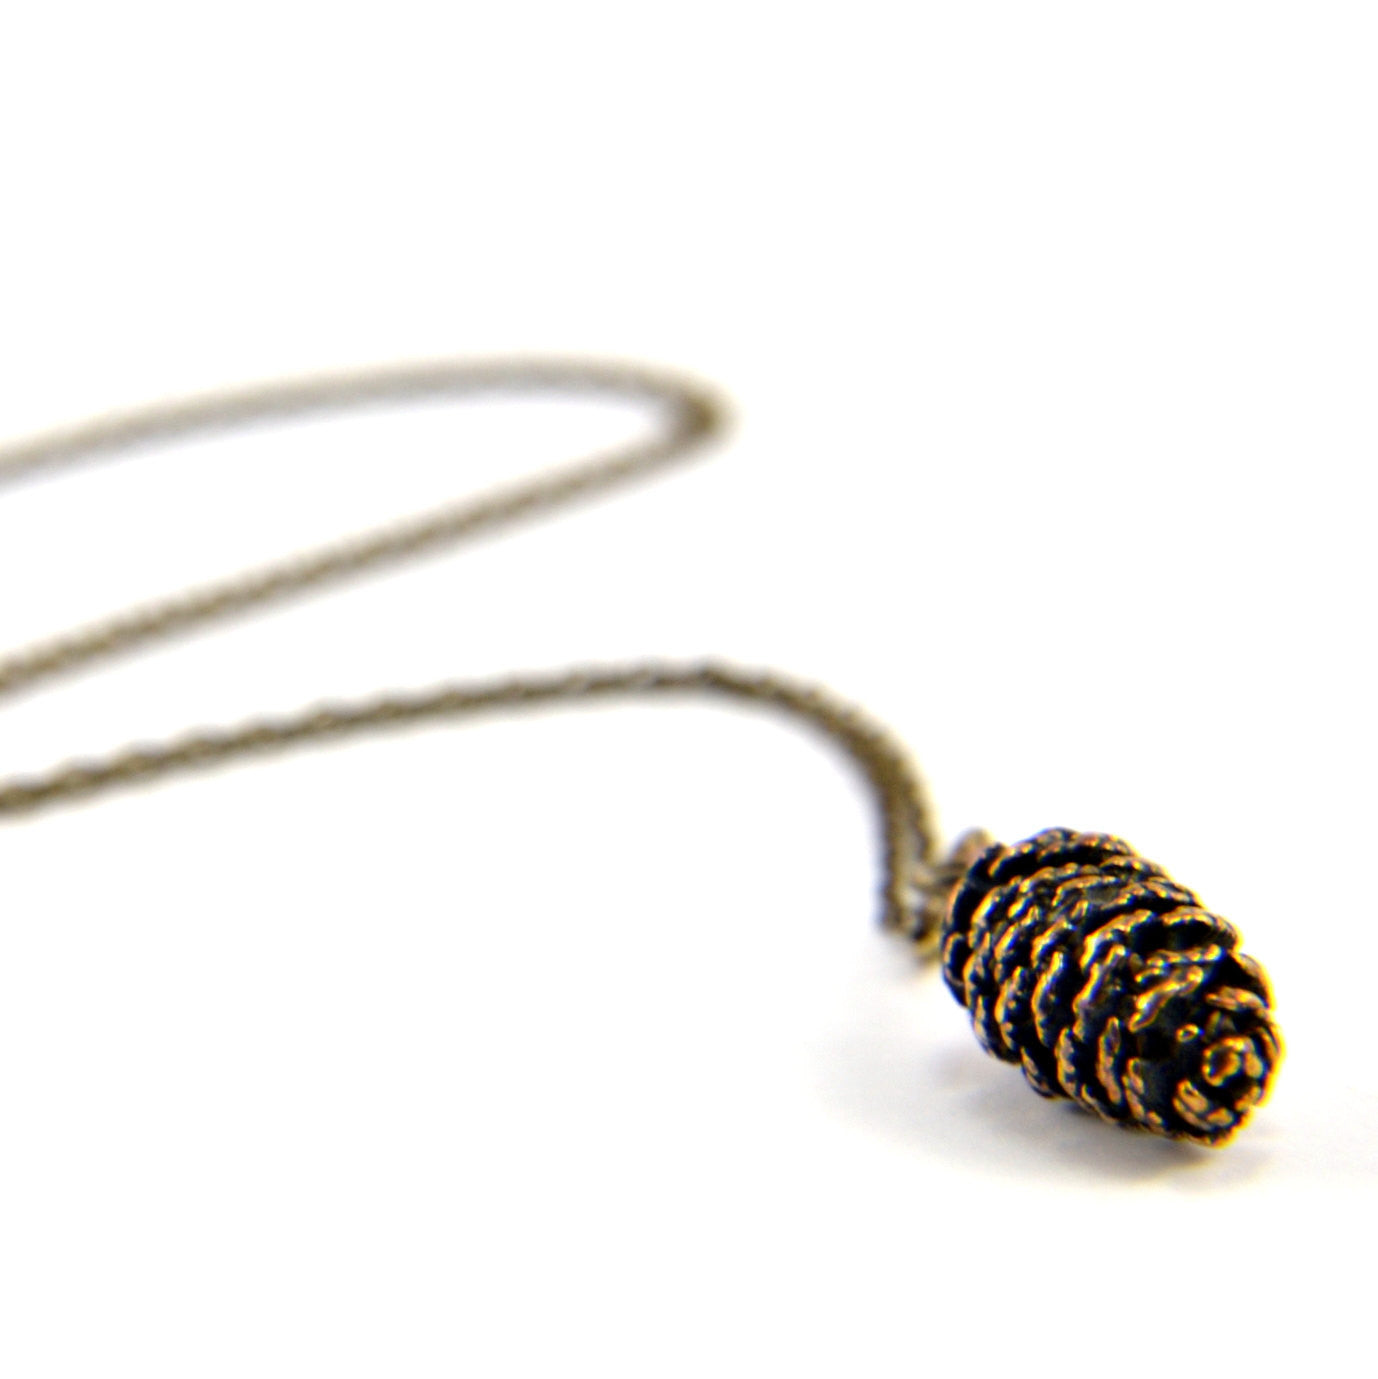 Tiny Pine Cone Necklace - Gwen Delicious Jewelry Designs